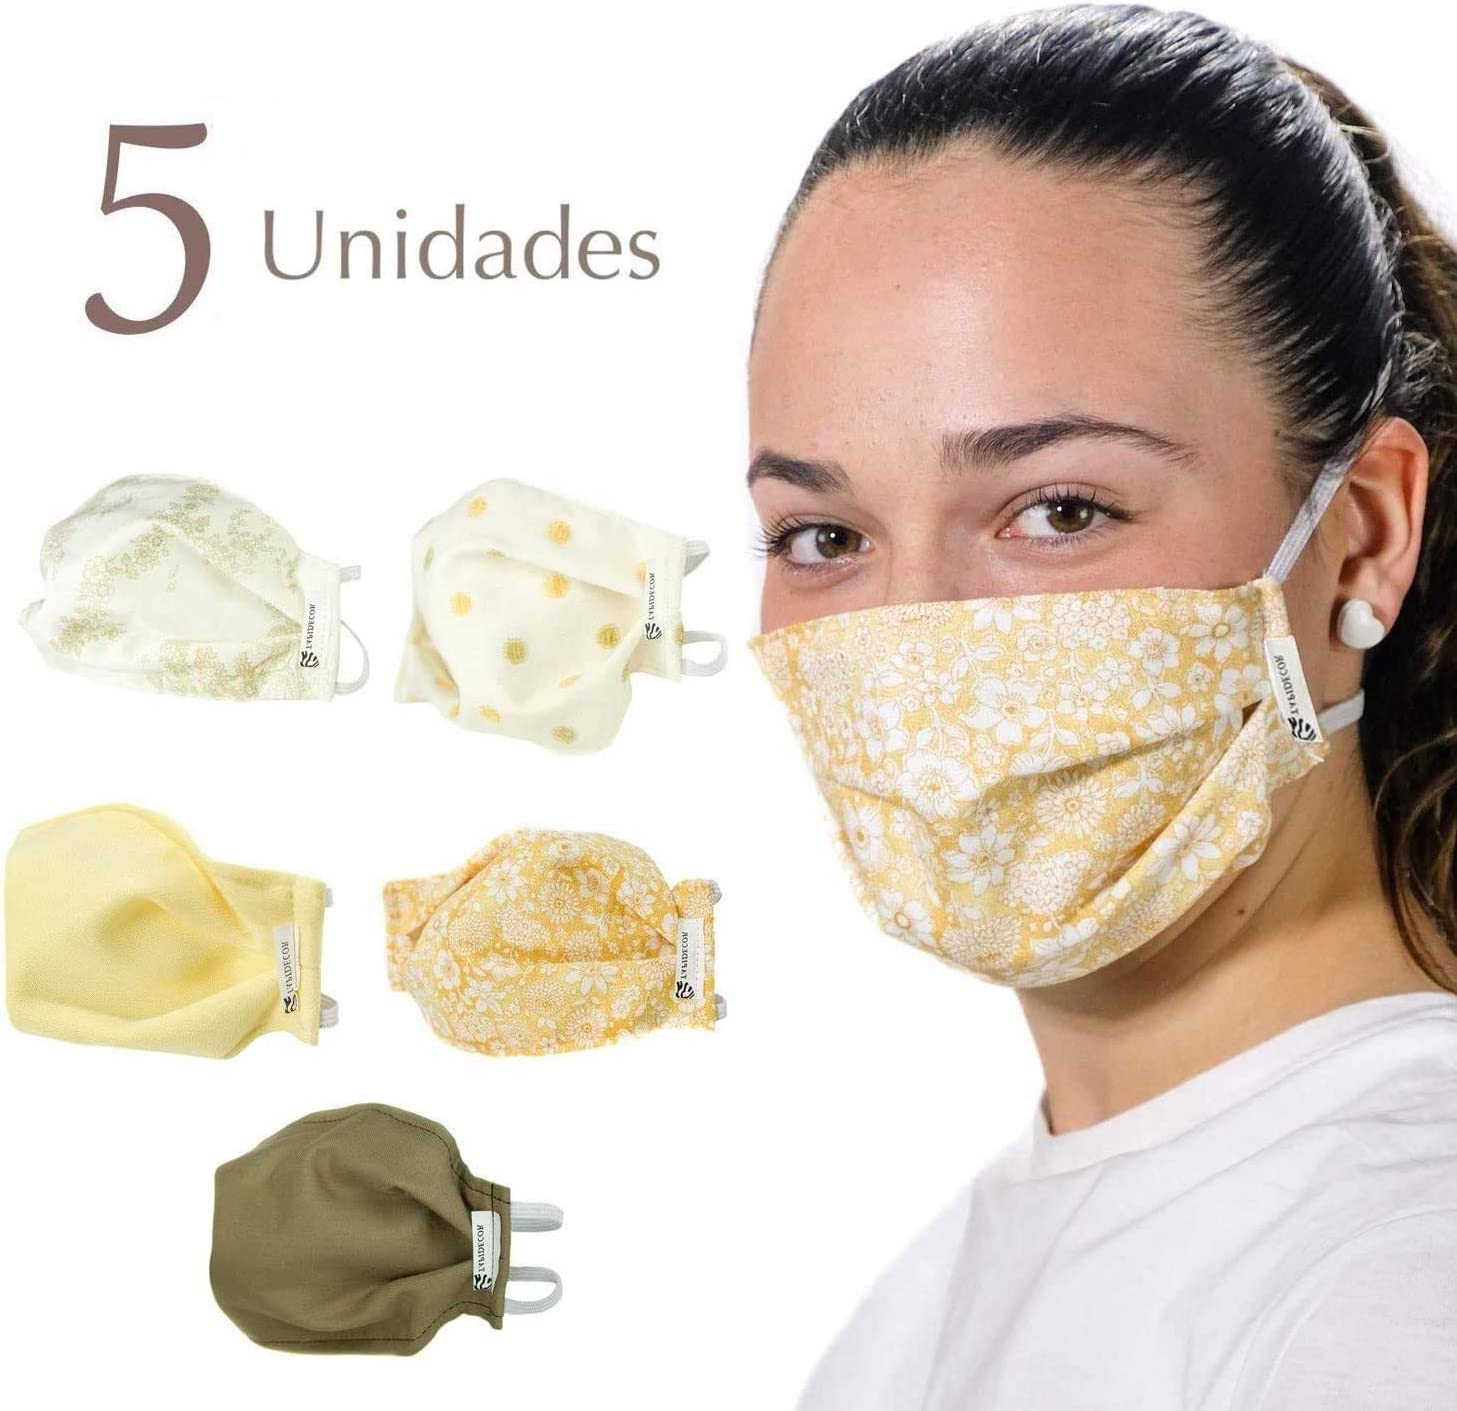 PACK 5 MASCARILLAS TELA LAVABLES REUTILIZABLES YELLOW PARTY 3 CAPAS ALGODON DOBLE AJUSTE ELASTICO VARIOS COLORES